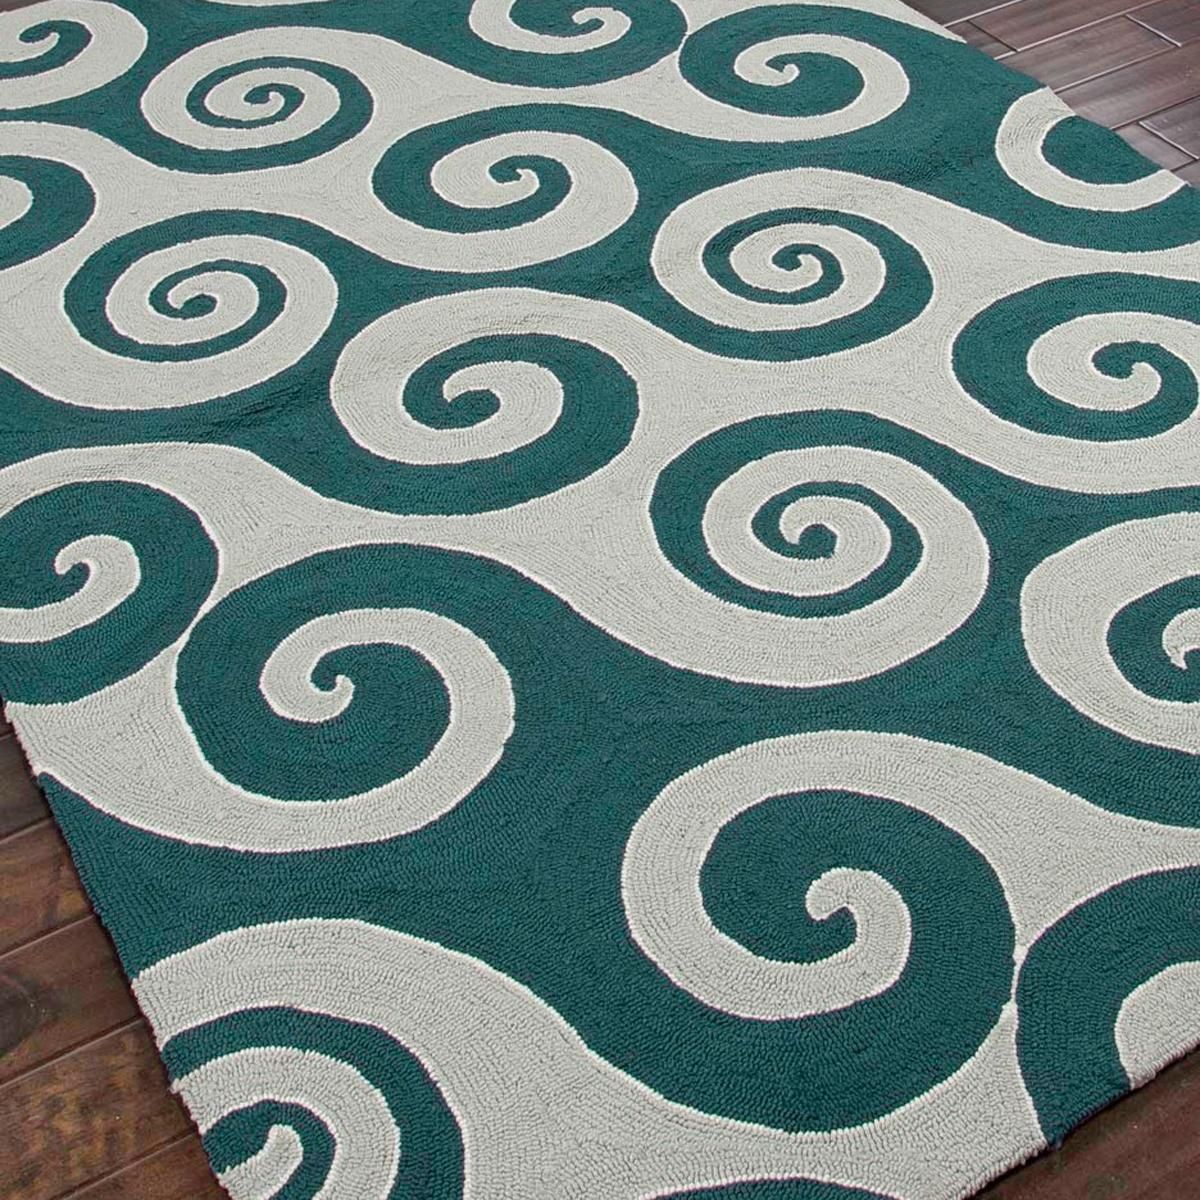 Idea For Living Room: Whimsical Waves And Scrolls Outdoor